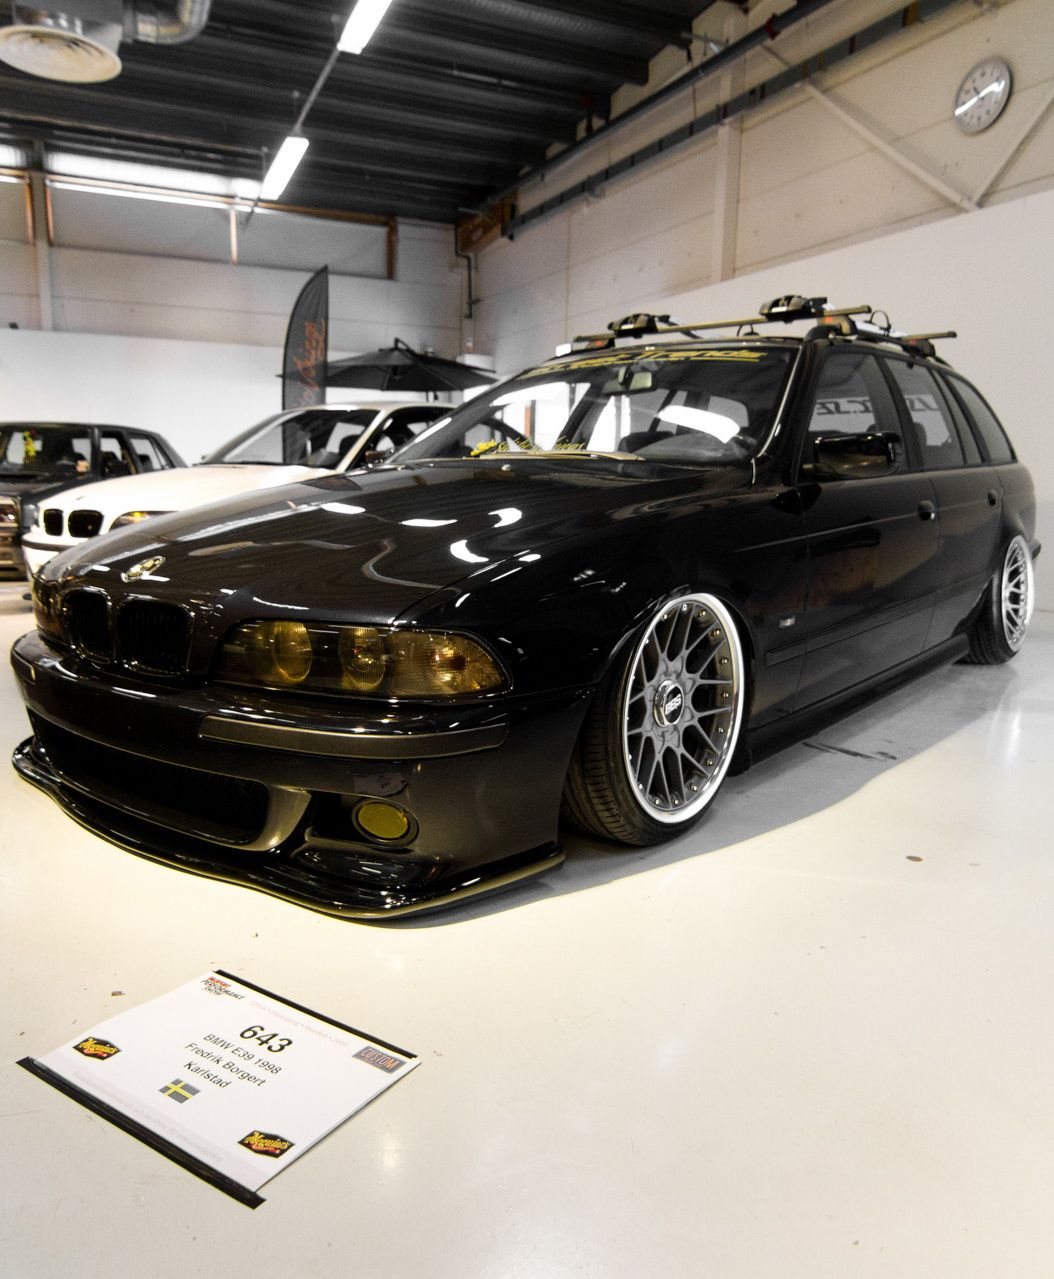 bmw e39 touring bmw 4ever bmw bmw e39 touring s. Black Bedroom Furniture Sets. Home Design Ideas